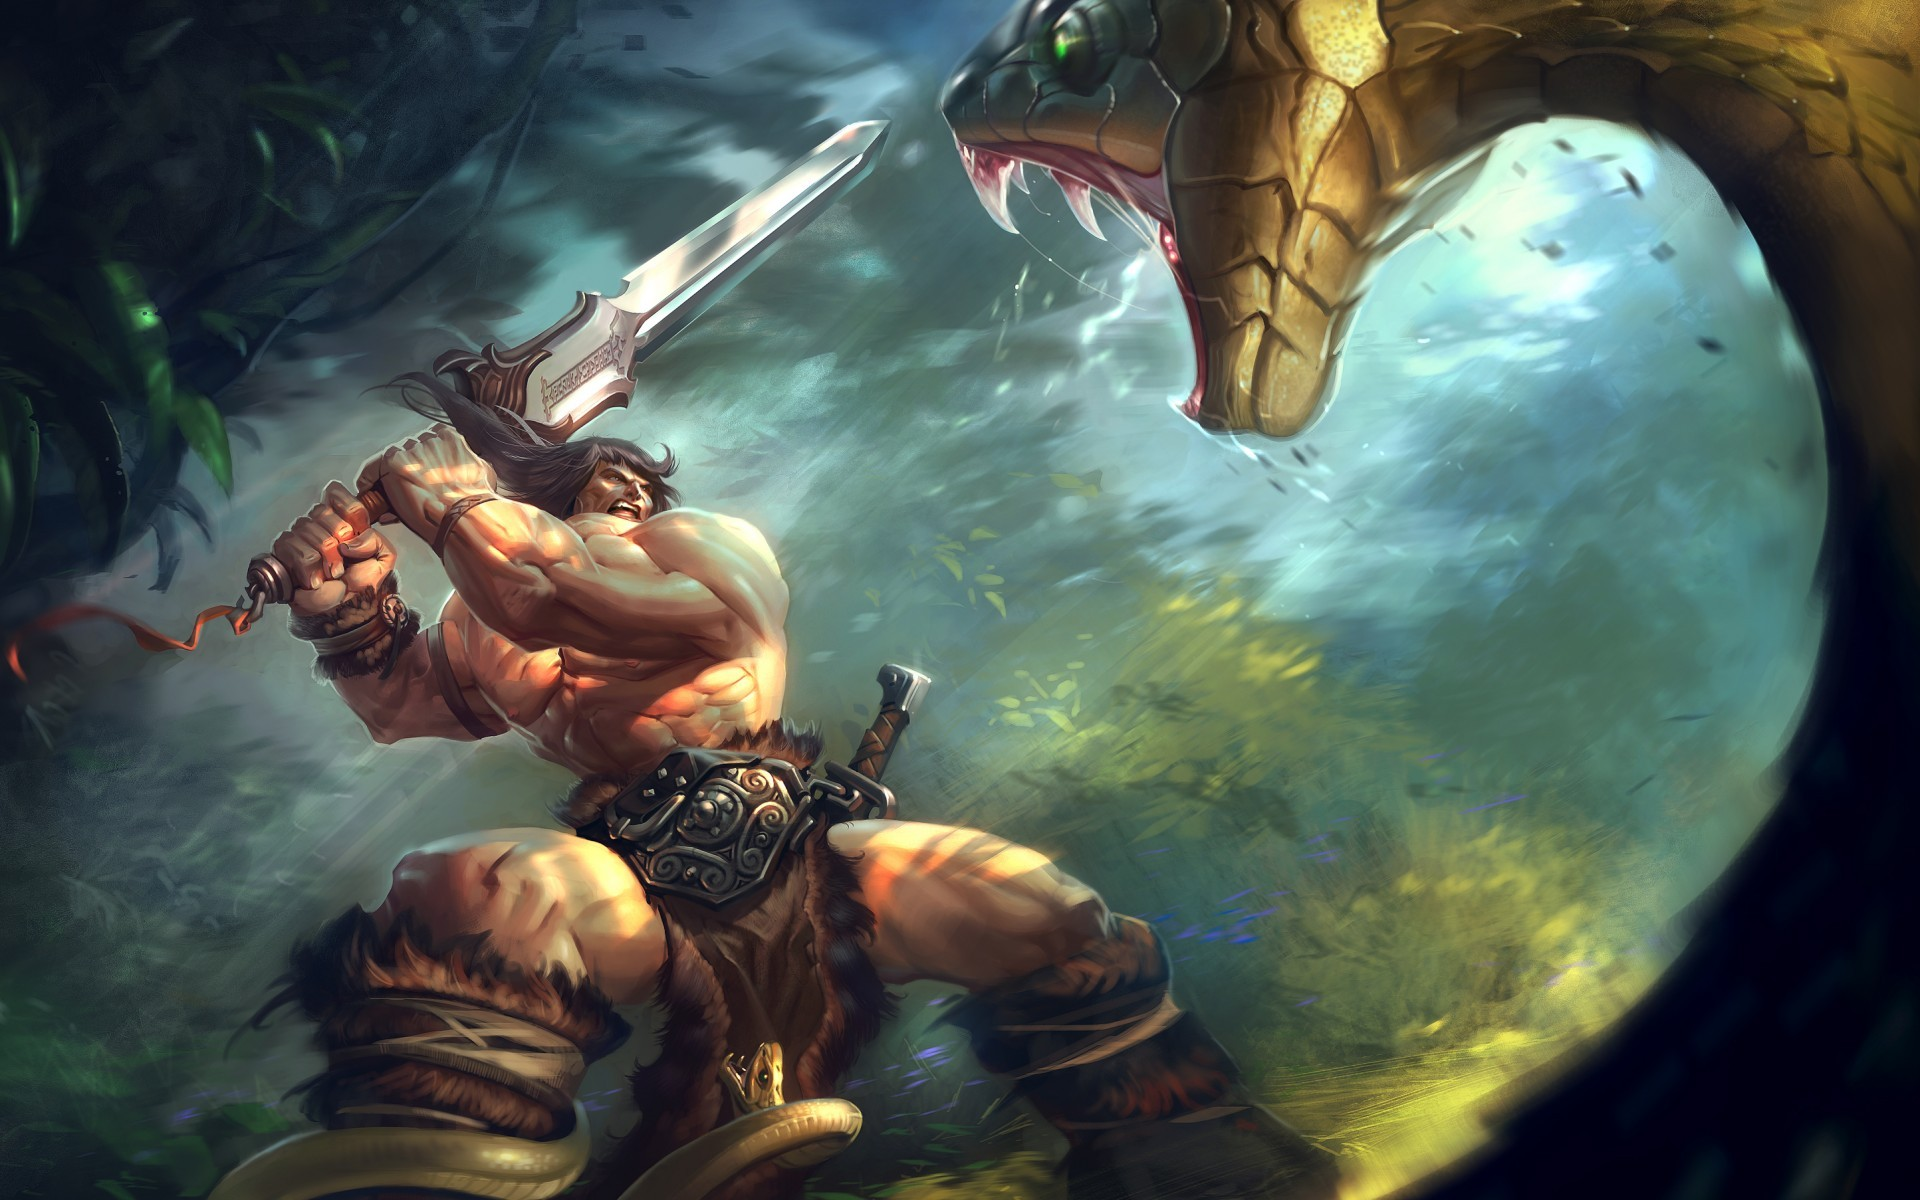 snakes fantasy art Conan the Barbarian swords wallpaper background 1920x1200